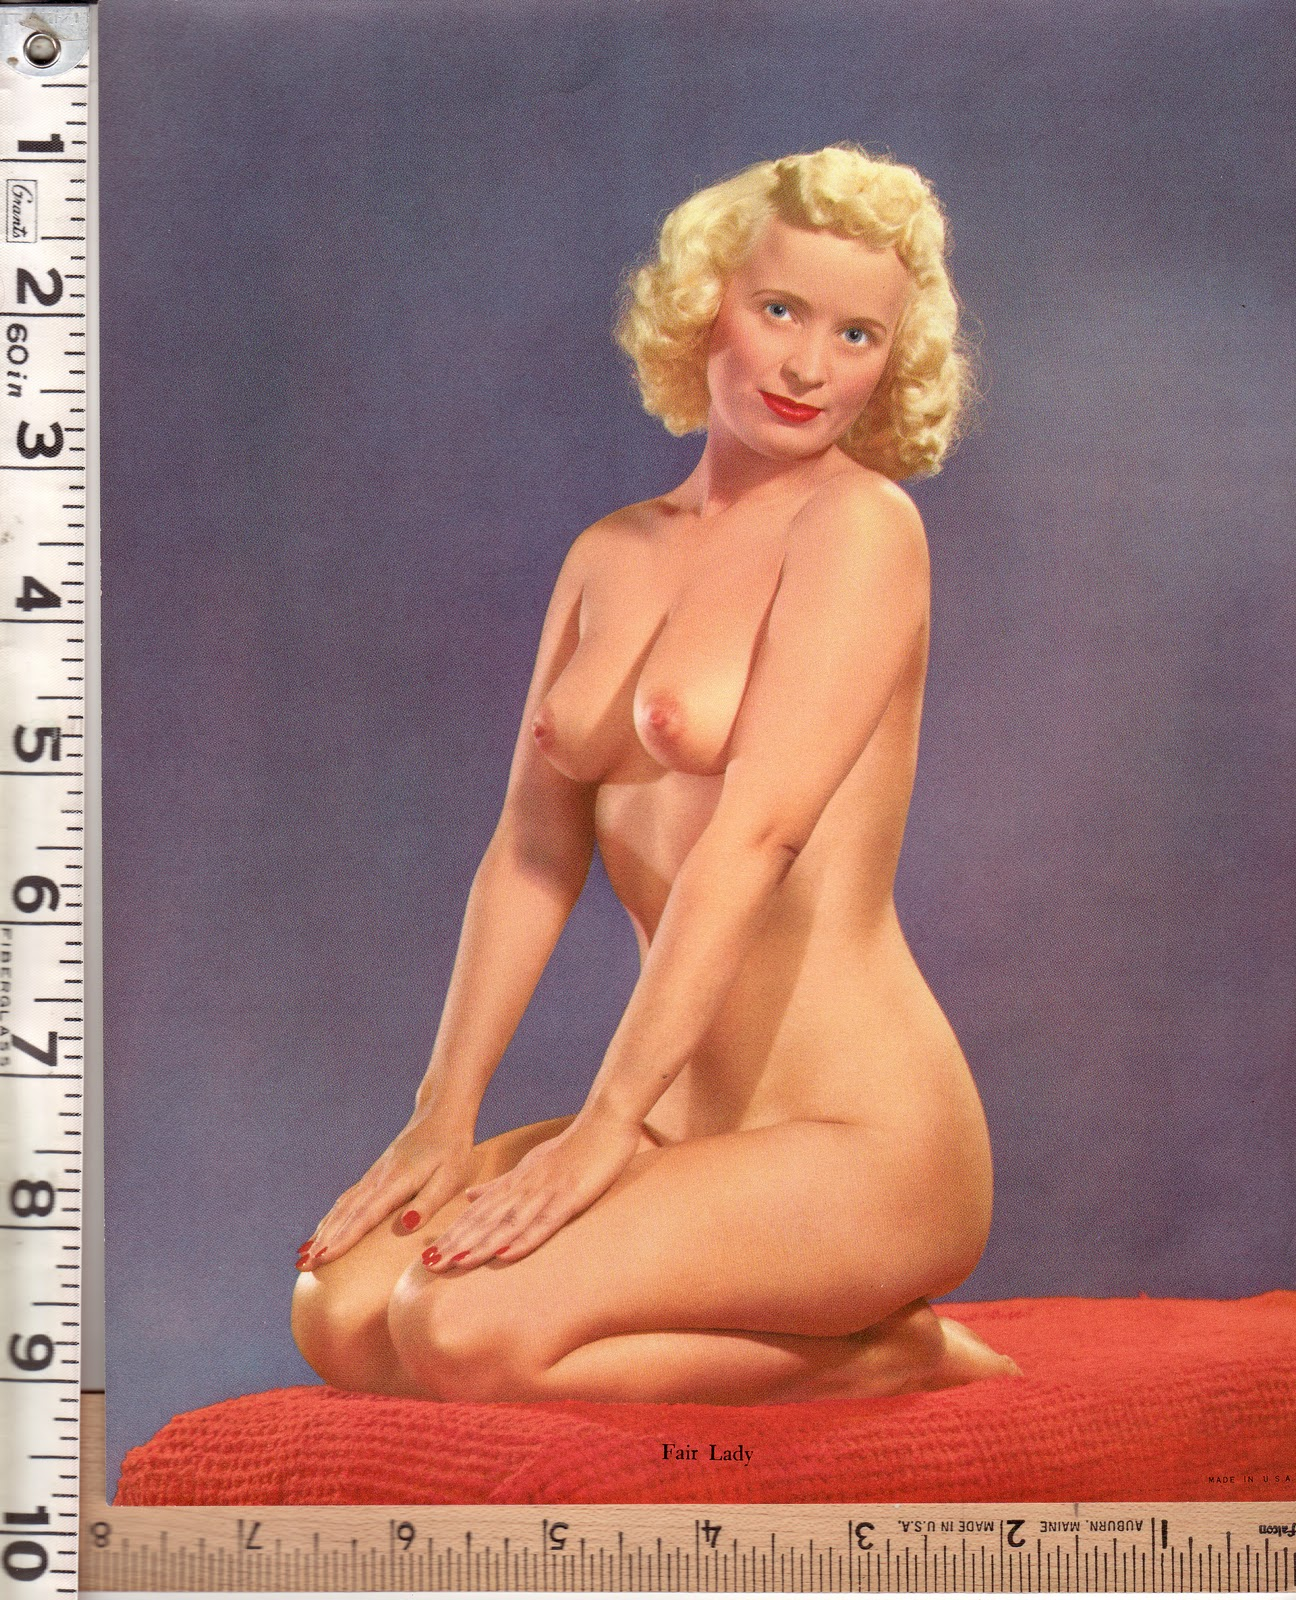 Apologise, Pin ups nudes consider, that